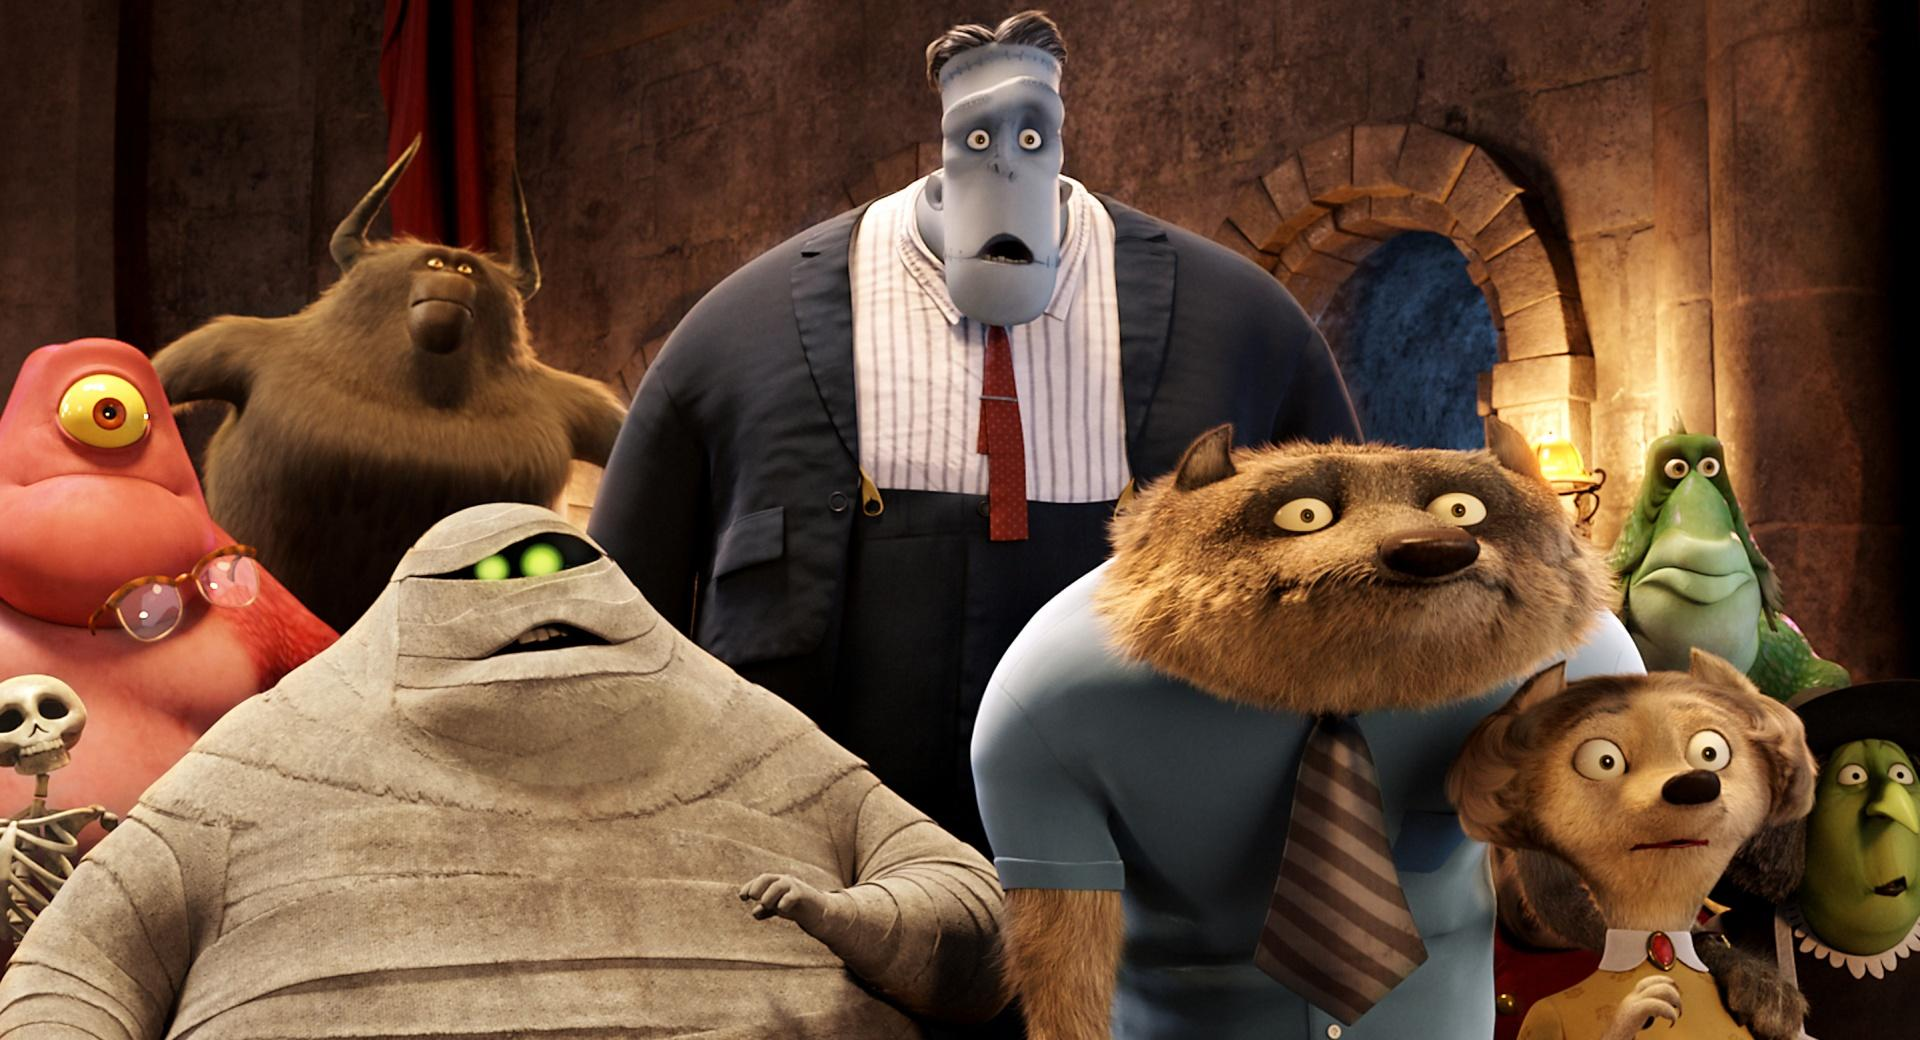 Hotel Transylvania Guests wallpapers HD quality